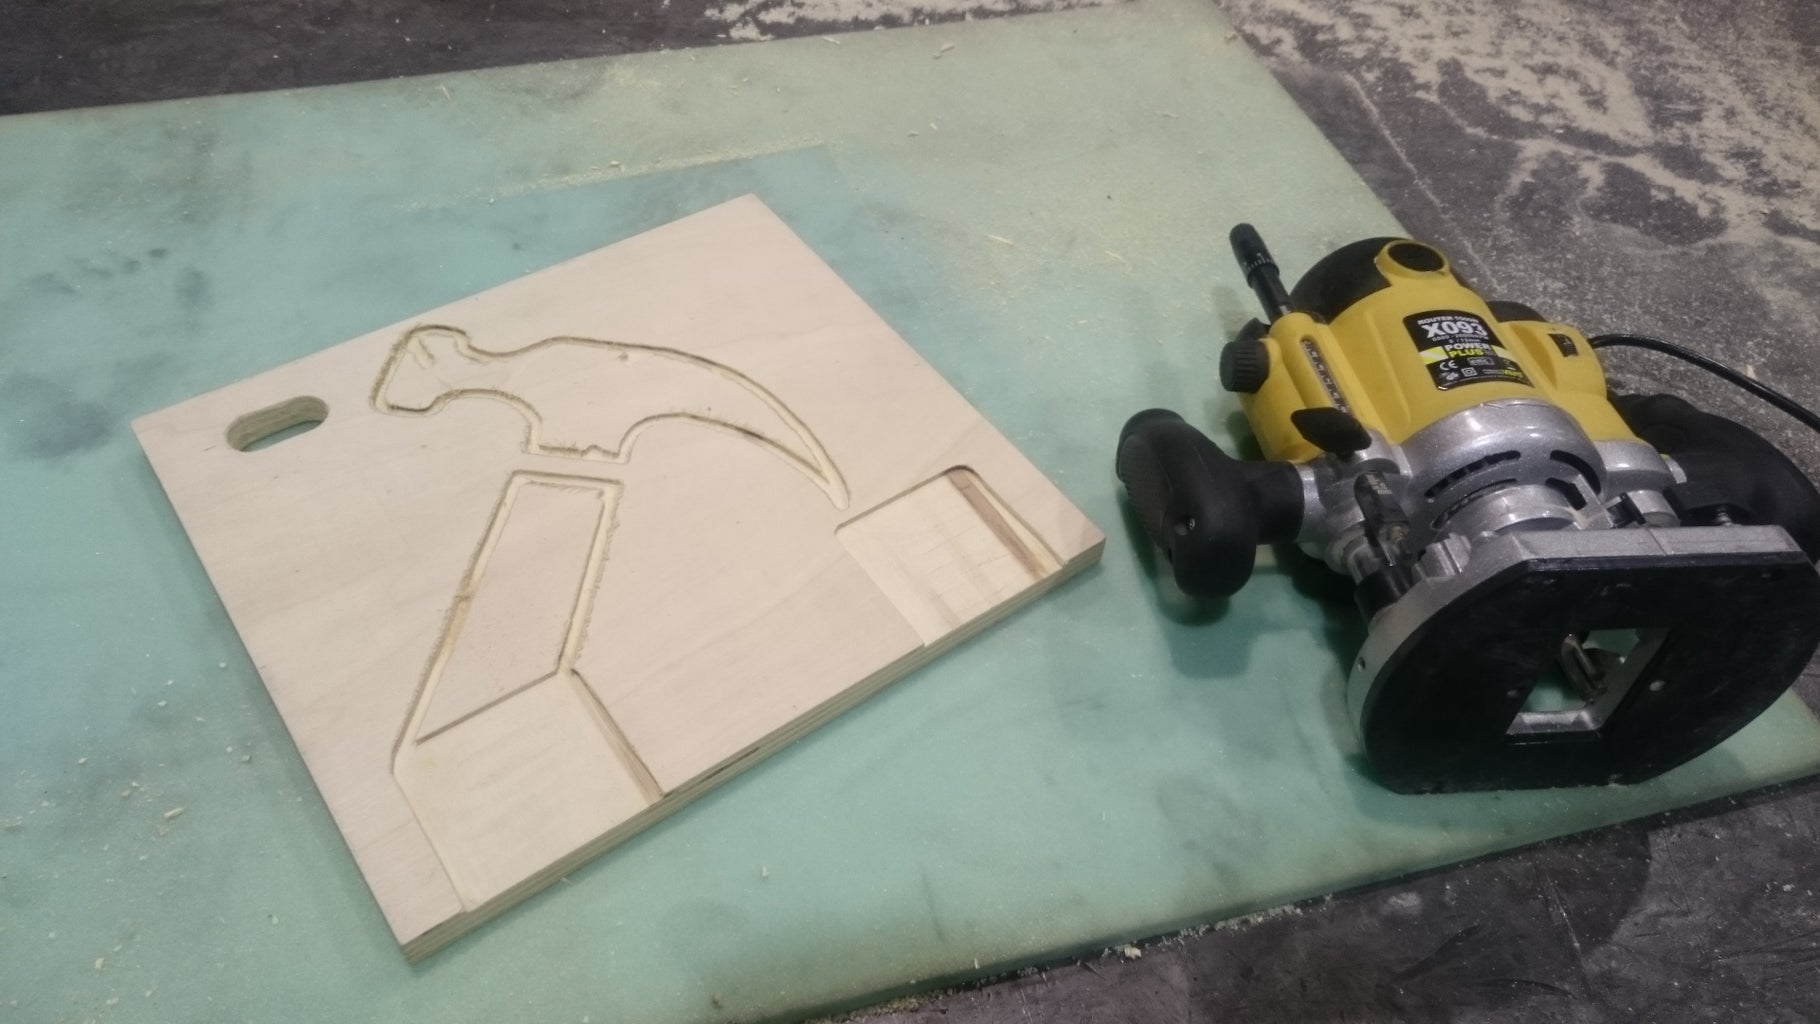 The Tool Stencils Are Also Milled Out 3 Mm and Painted